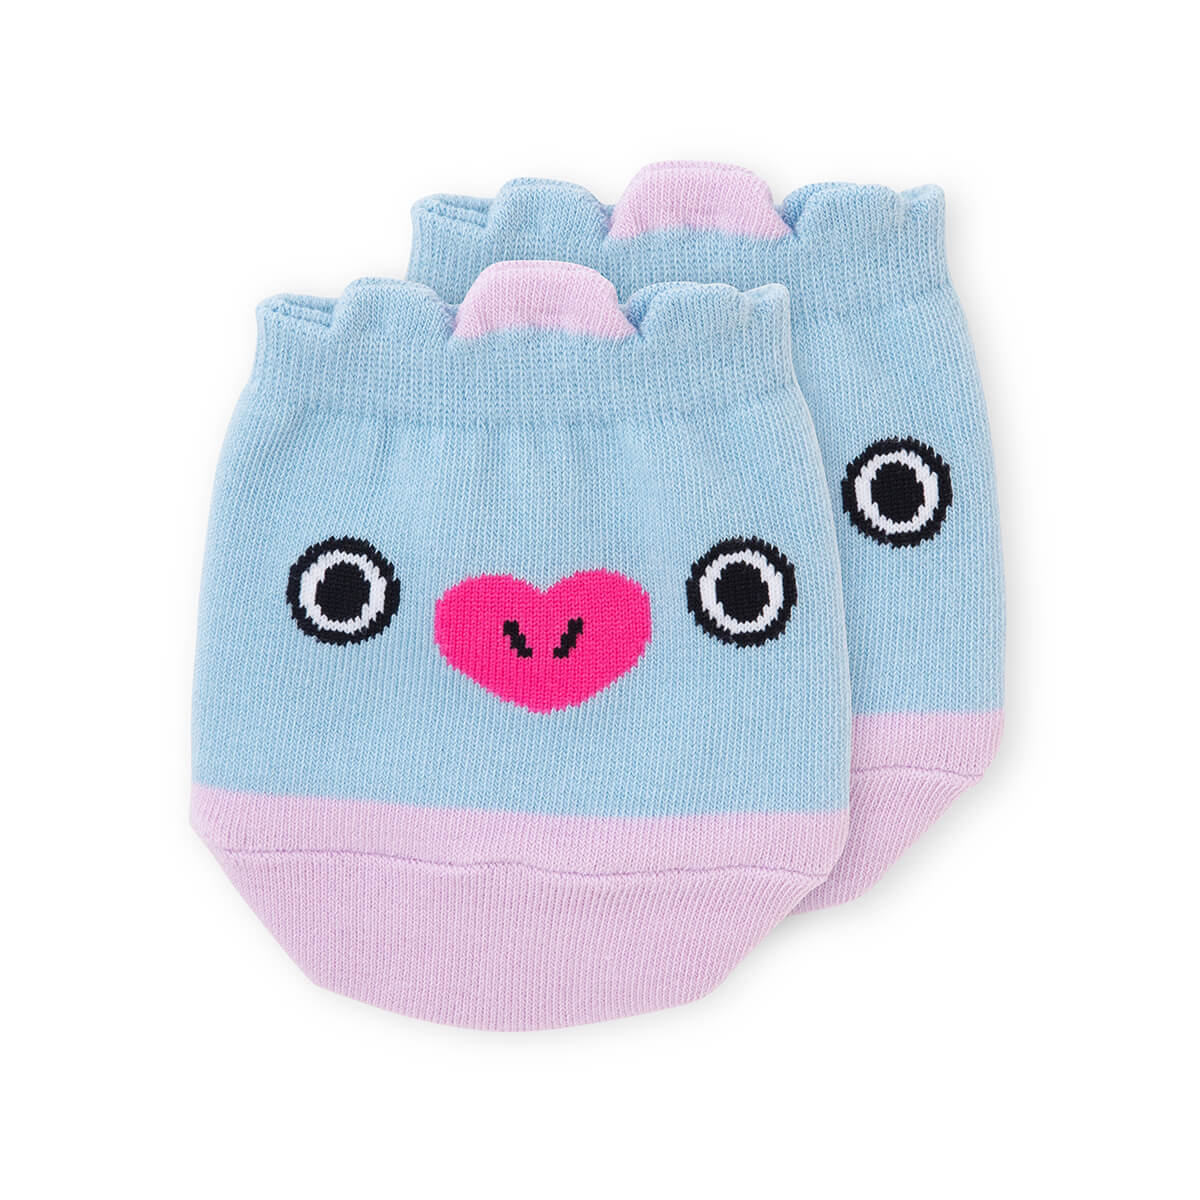 BT21 MANG Toe Topper Socks 230mm - 250mm